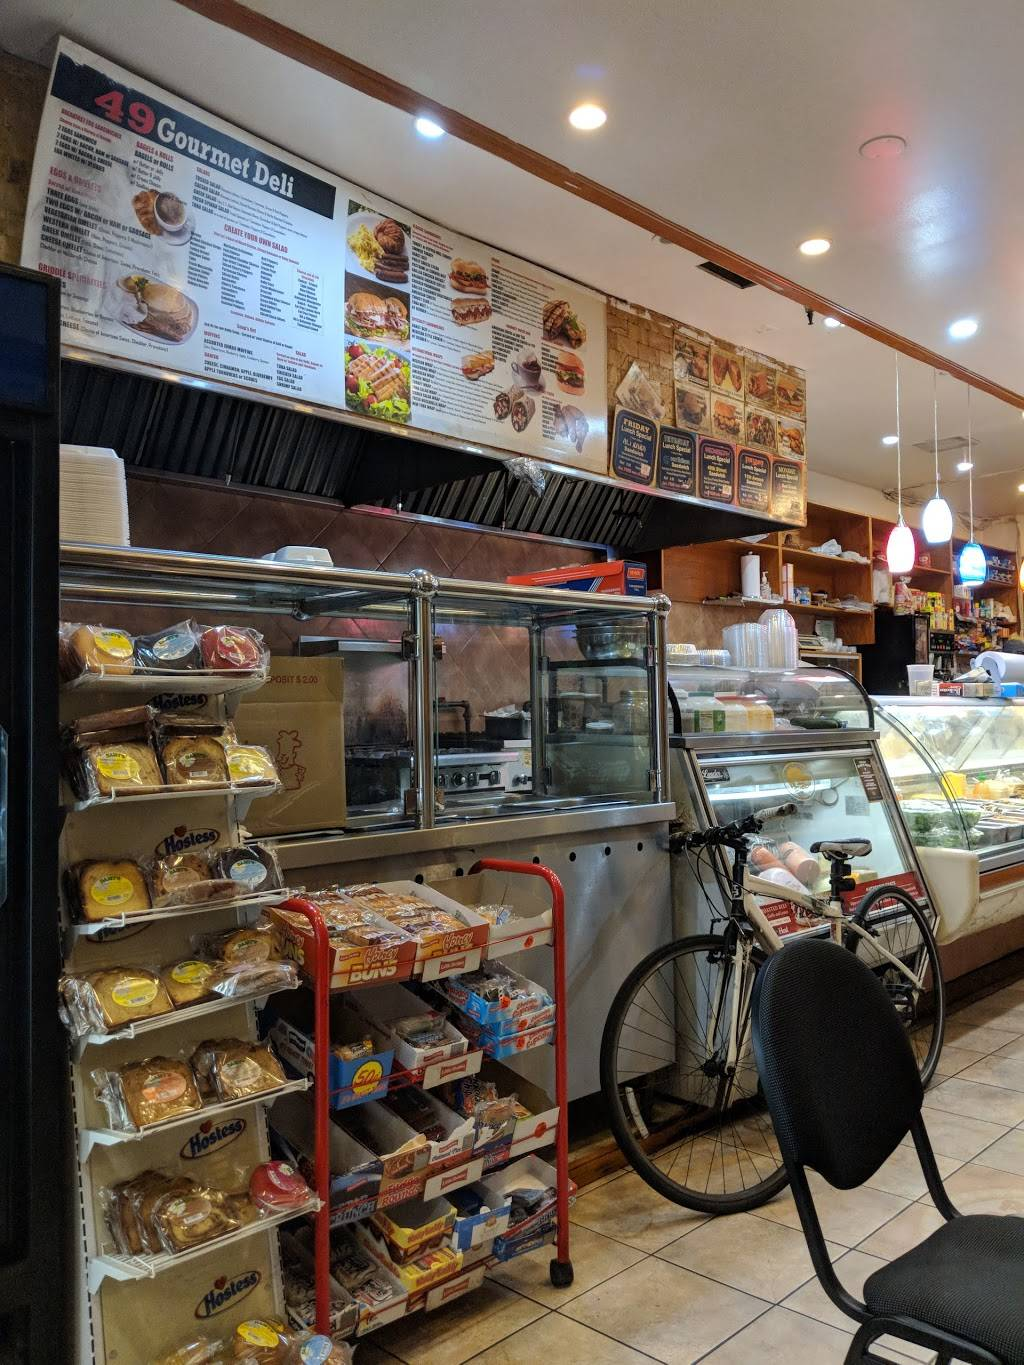 49 St Deli & Coffee House | restaurant | 682 11th Ave, New York, NY 10019, USA | 2122455551 OR +1 212-245-5551